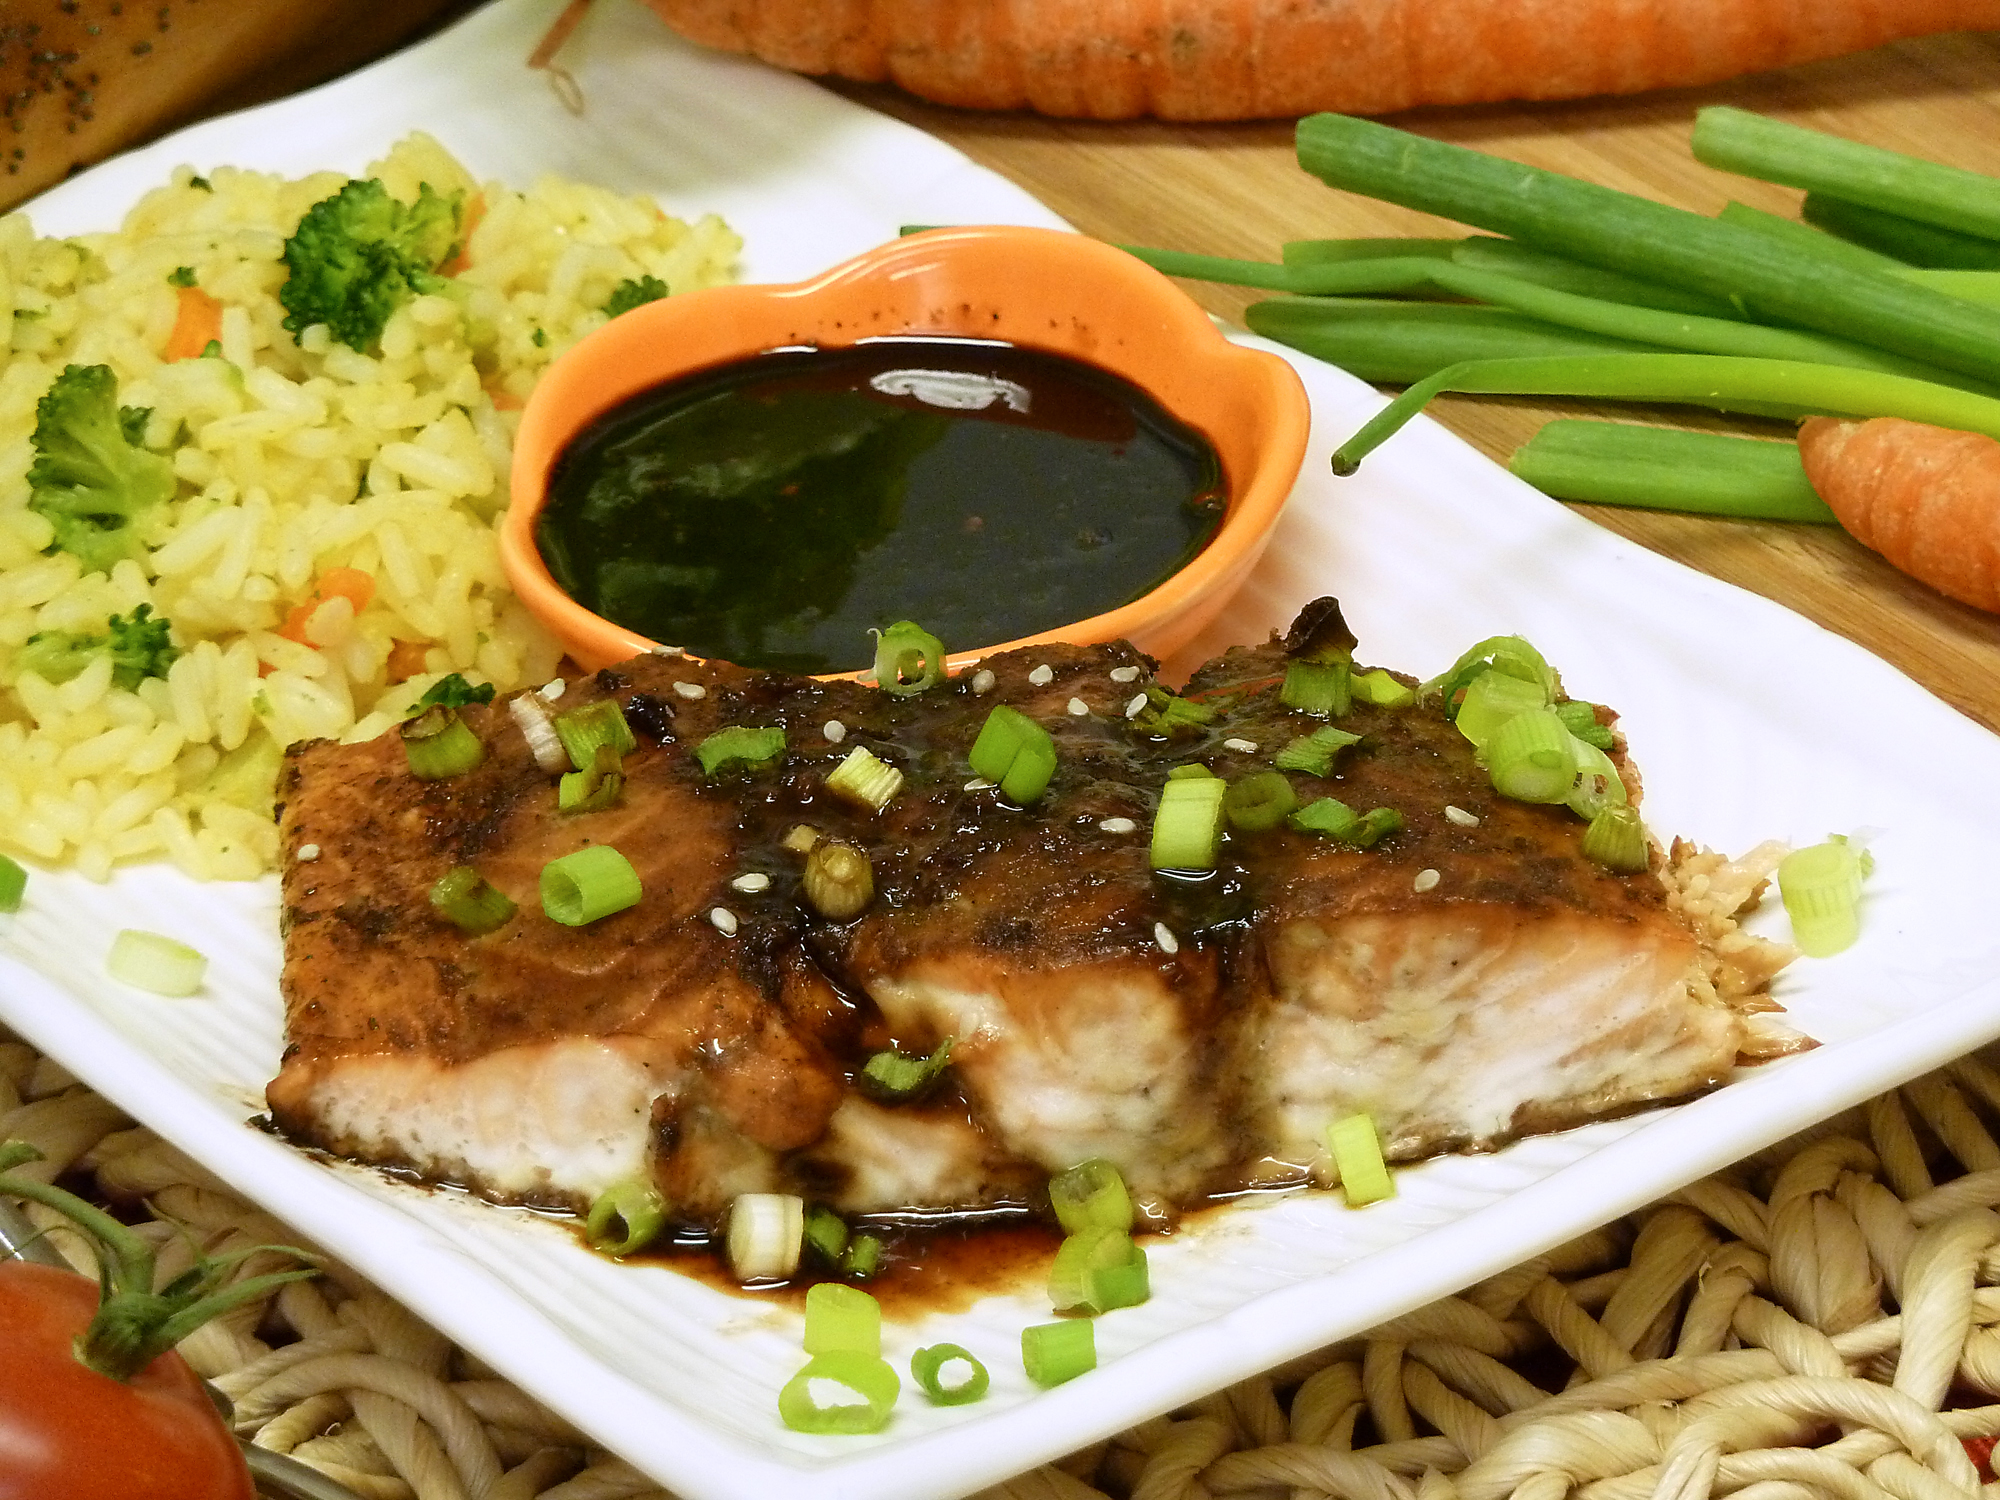 teriyaki glazed salmon recipe, fish, ginger, soy sauce, receipts